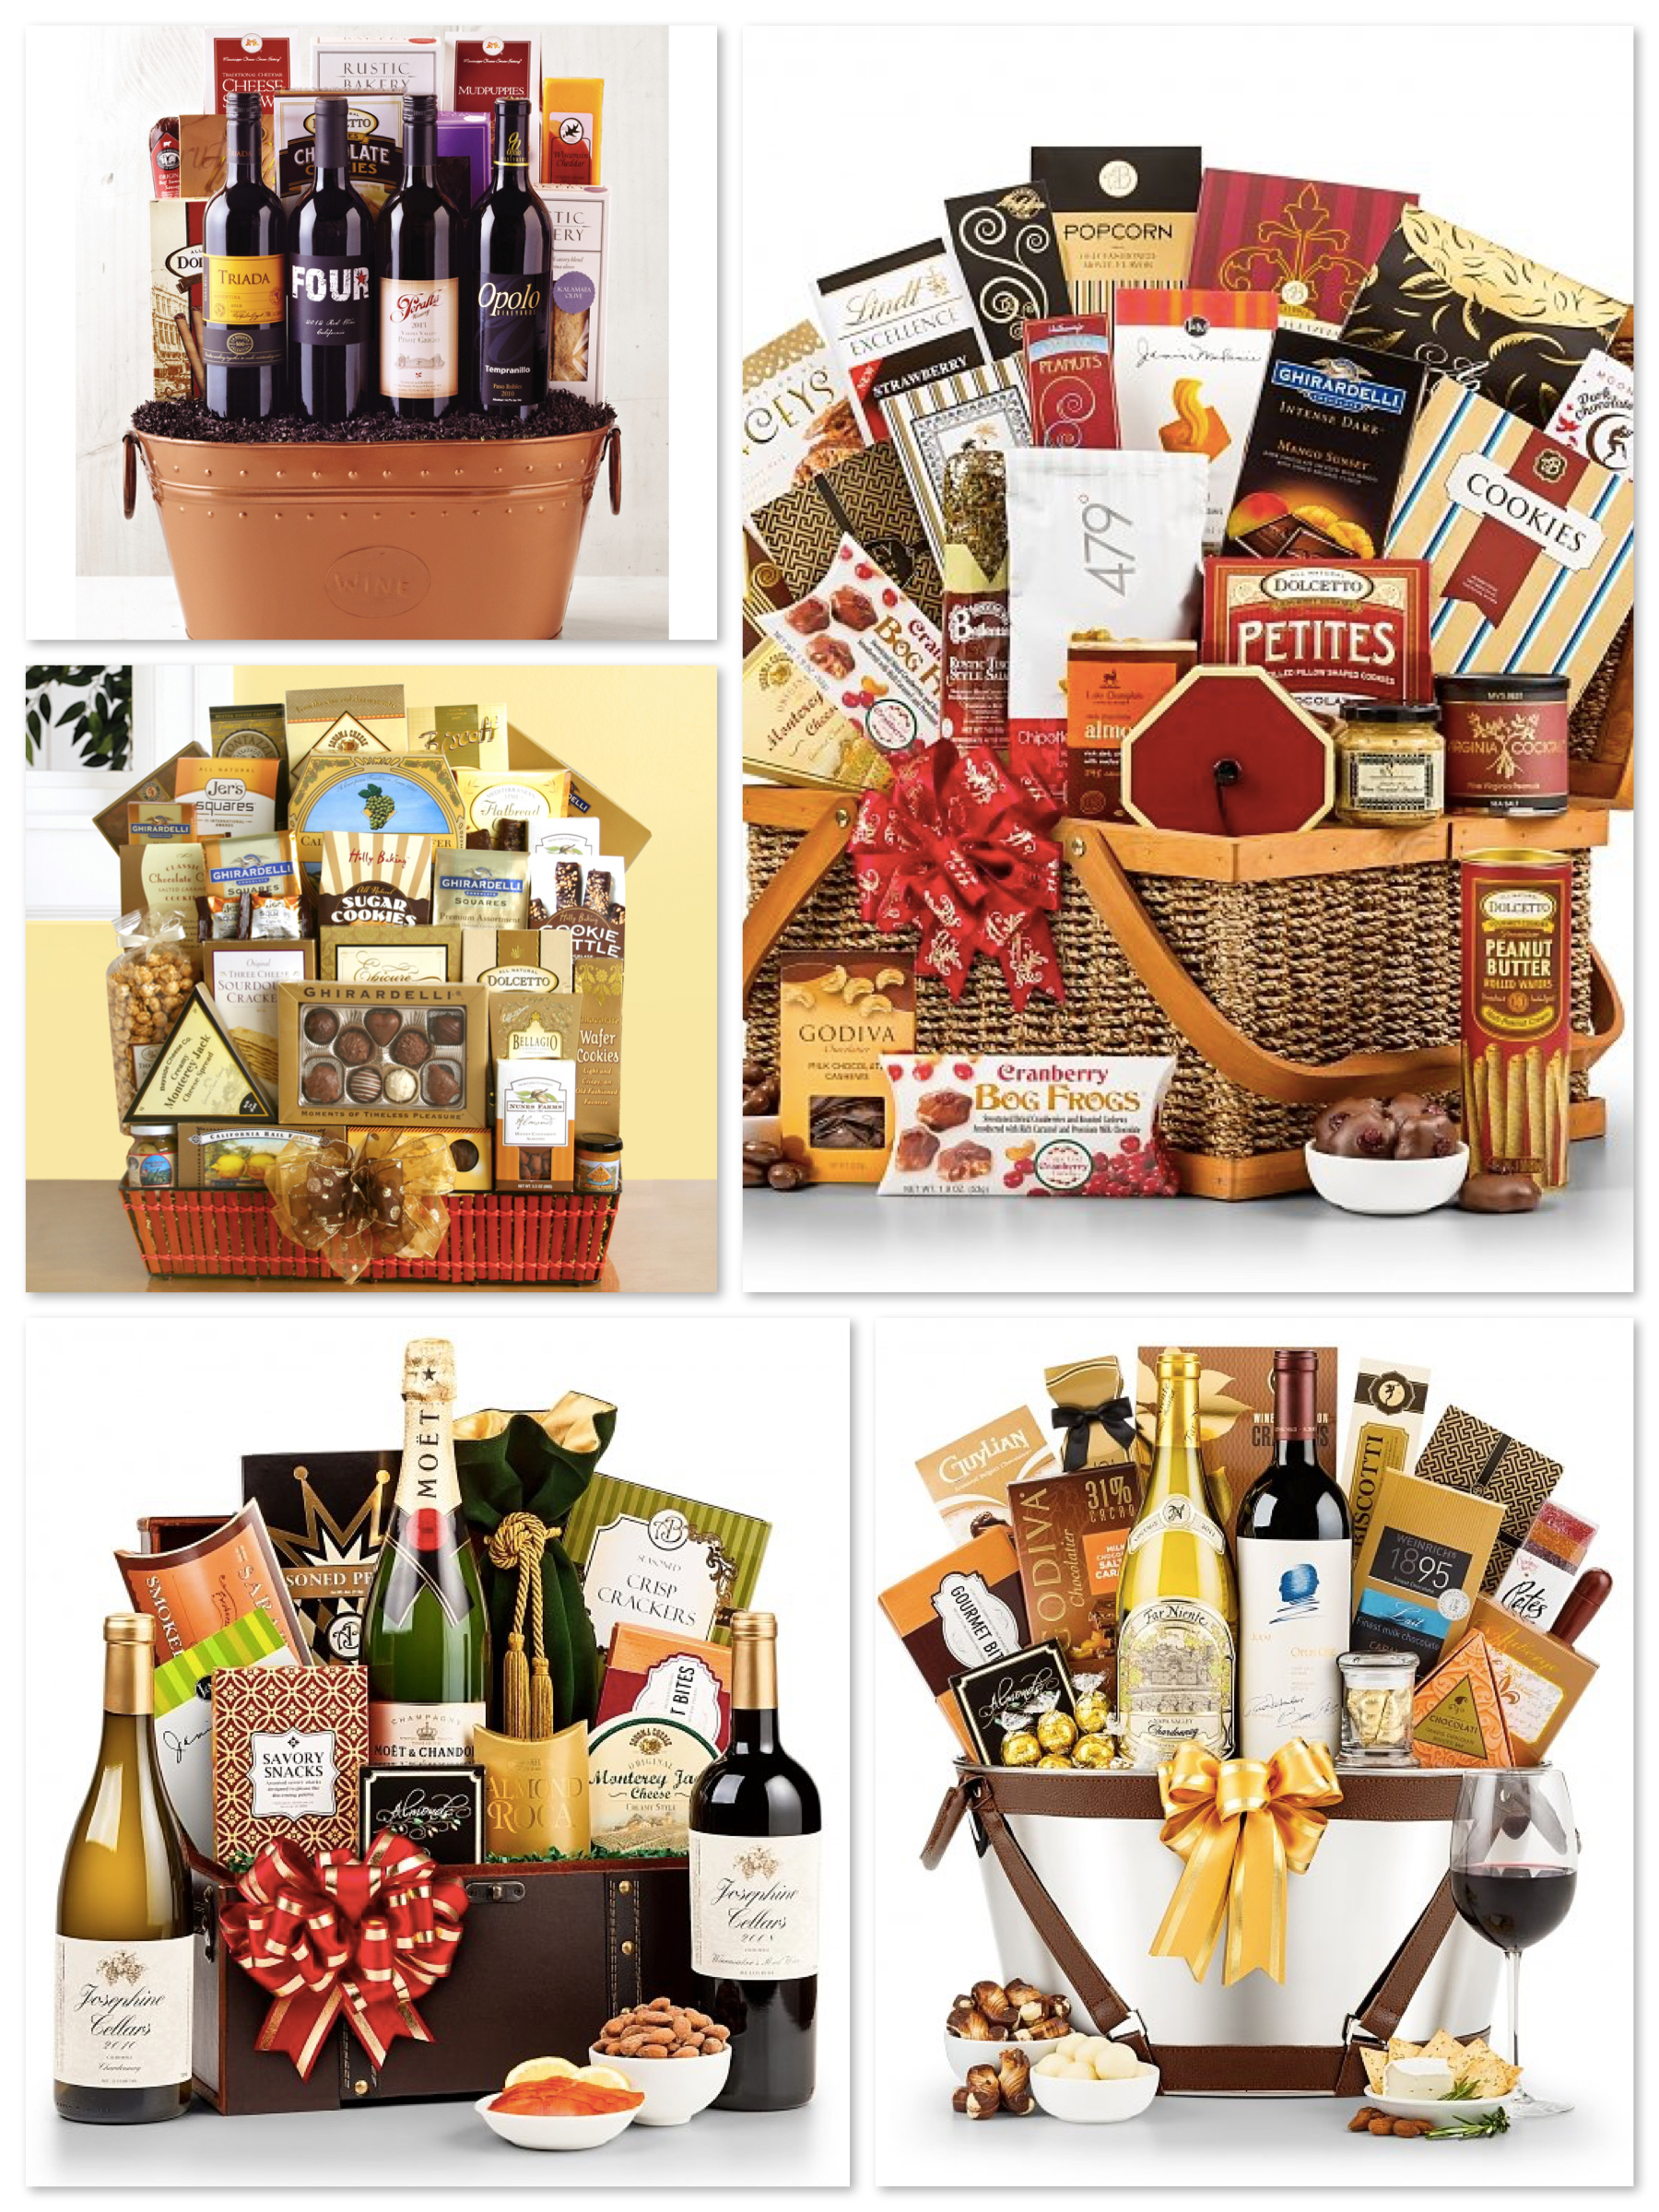 Luxury Gourmet Gift Baskets, Realtor Closing Gift Ideas Over $100.00